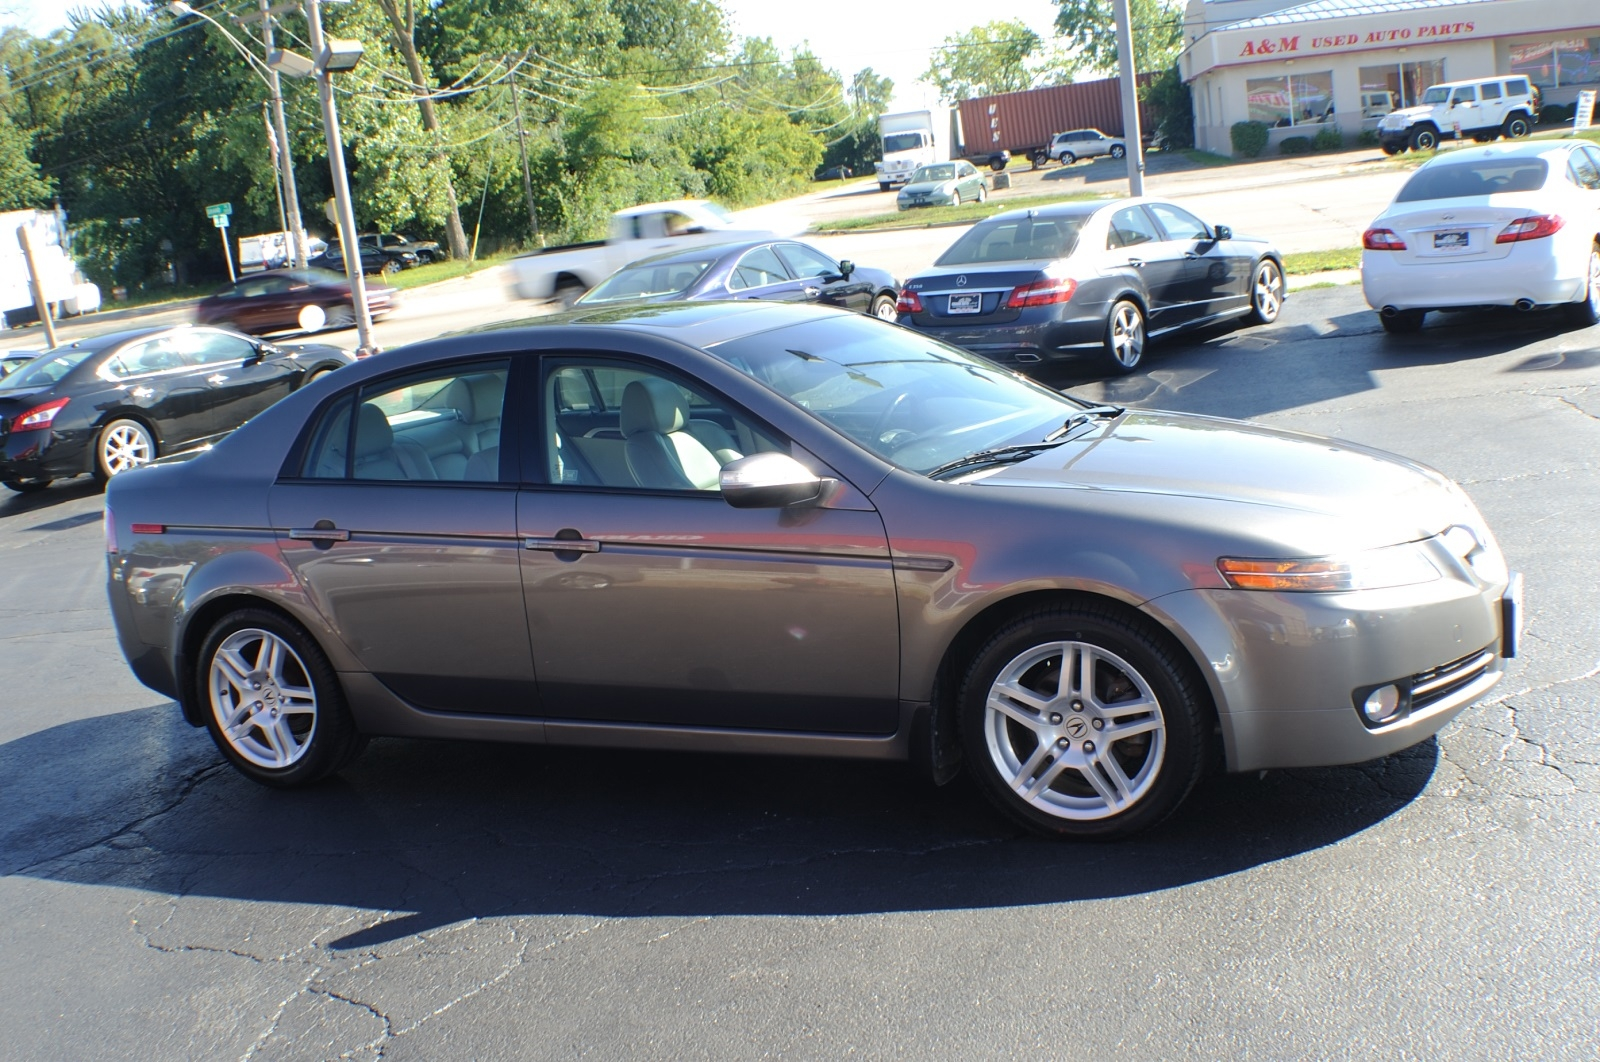 2007 Acura TL Gray Metallic Sedan Sale Used Car Sale Fox River Grove Grayslake Volo Waucanda